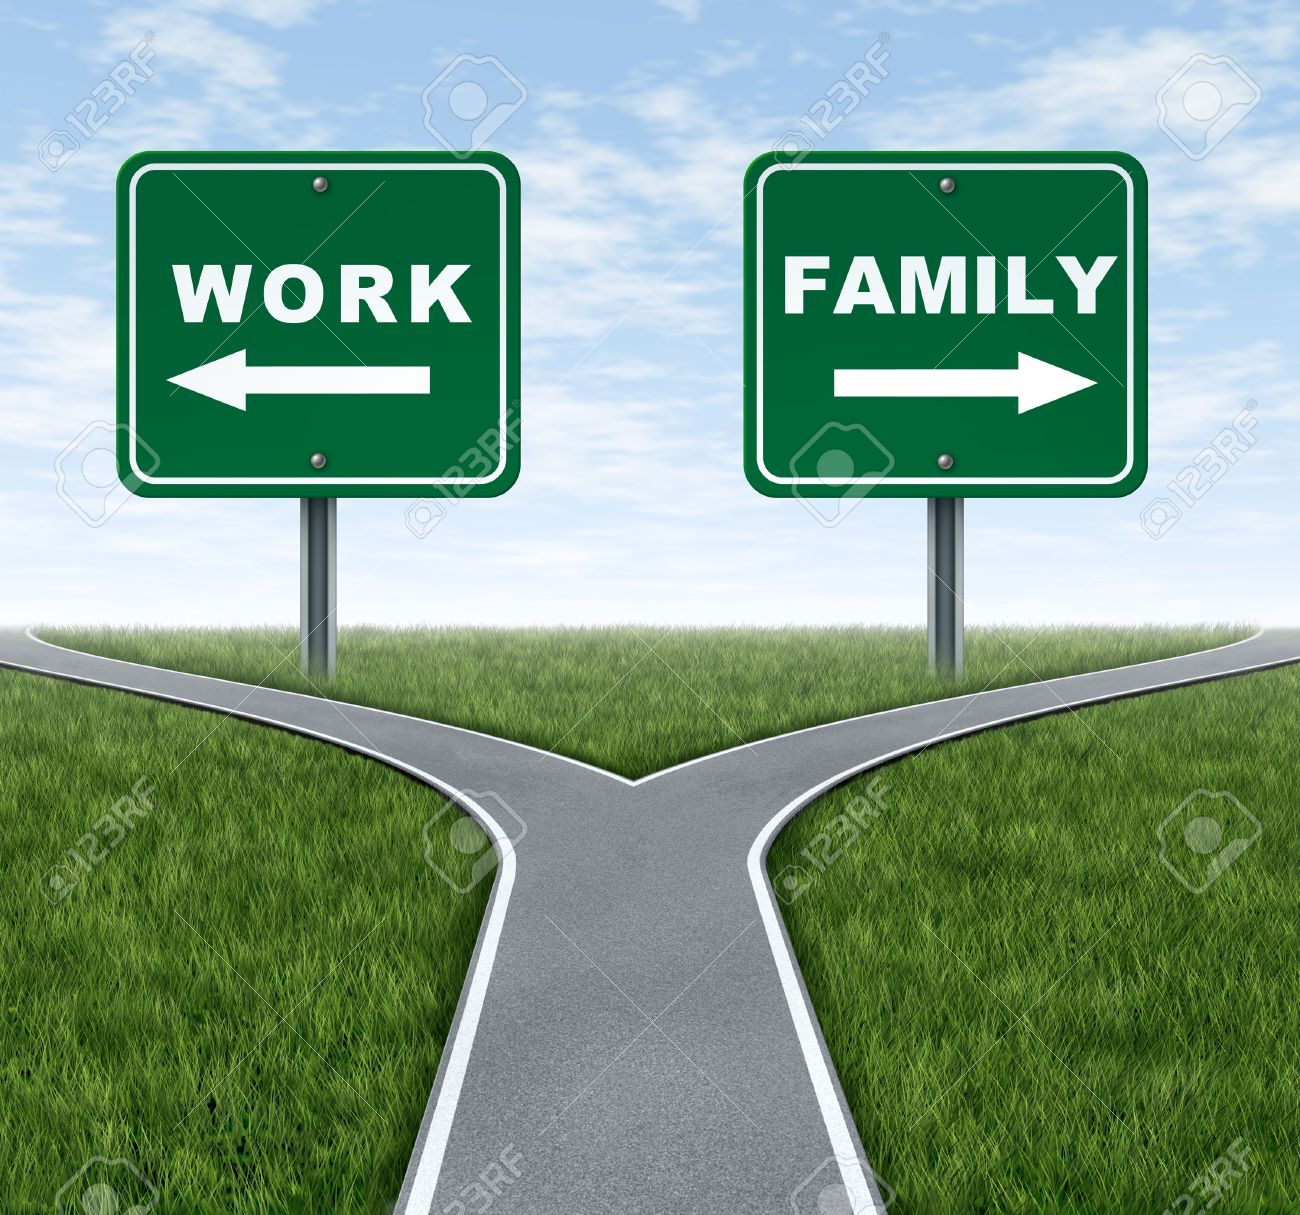 Work or family symbol representing the important life choice work or family symbol representing the important life choice of raising a family and spending time buycottarizona